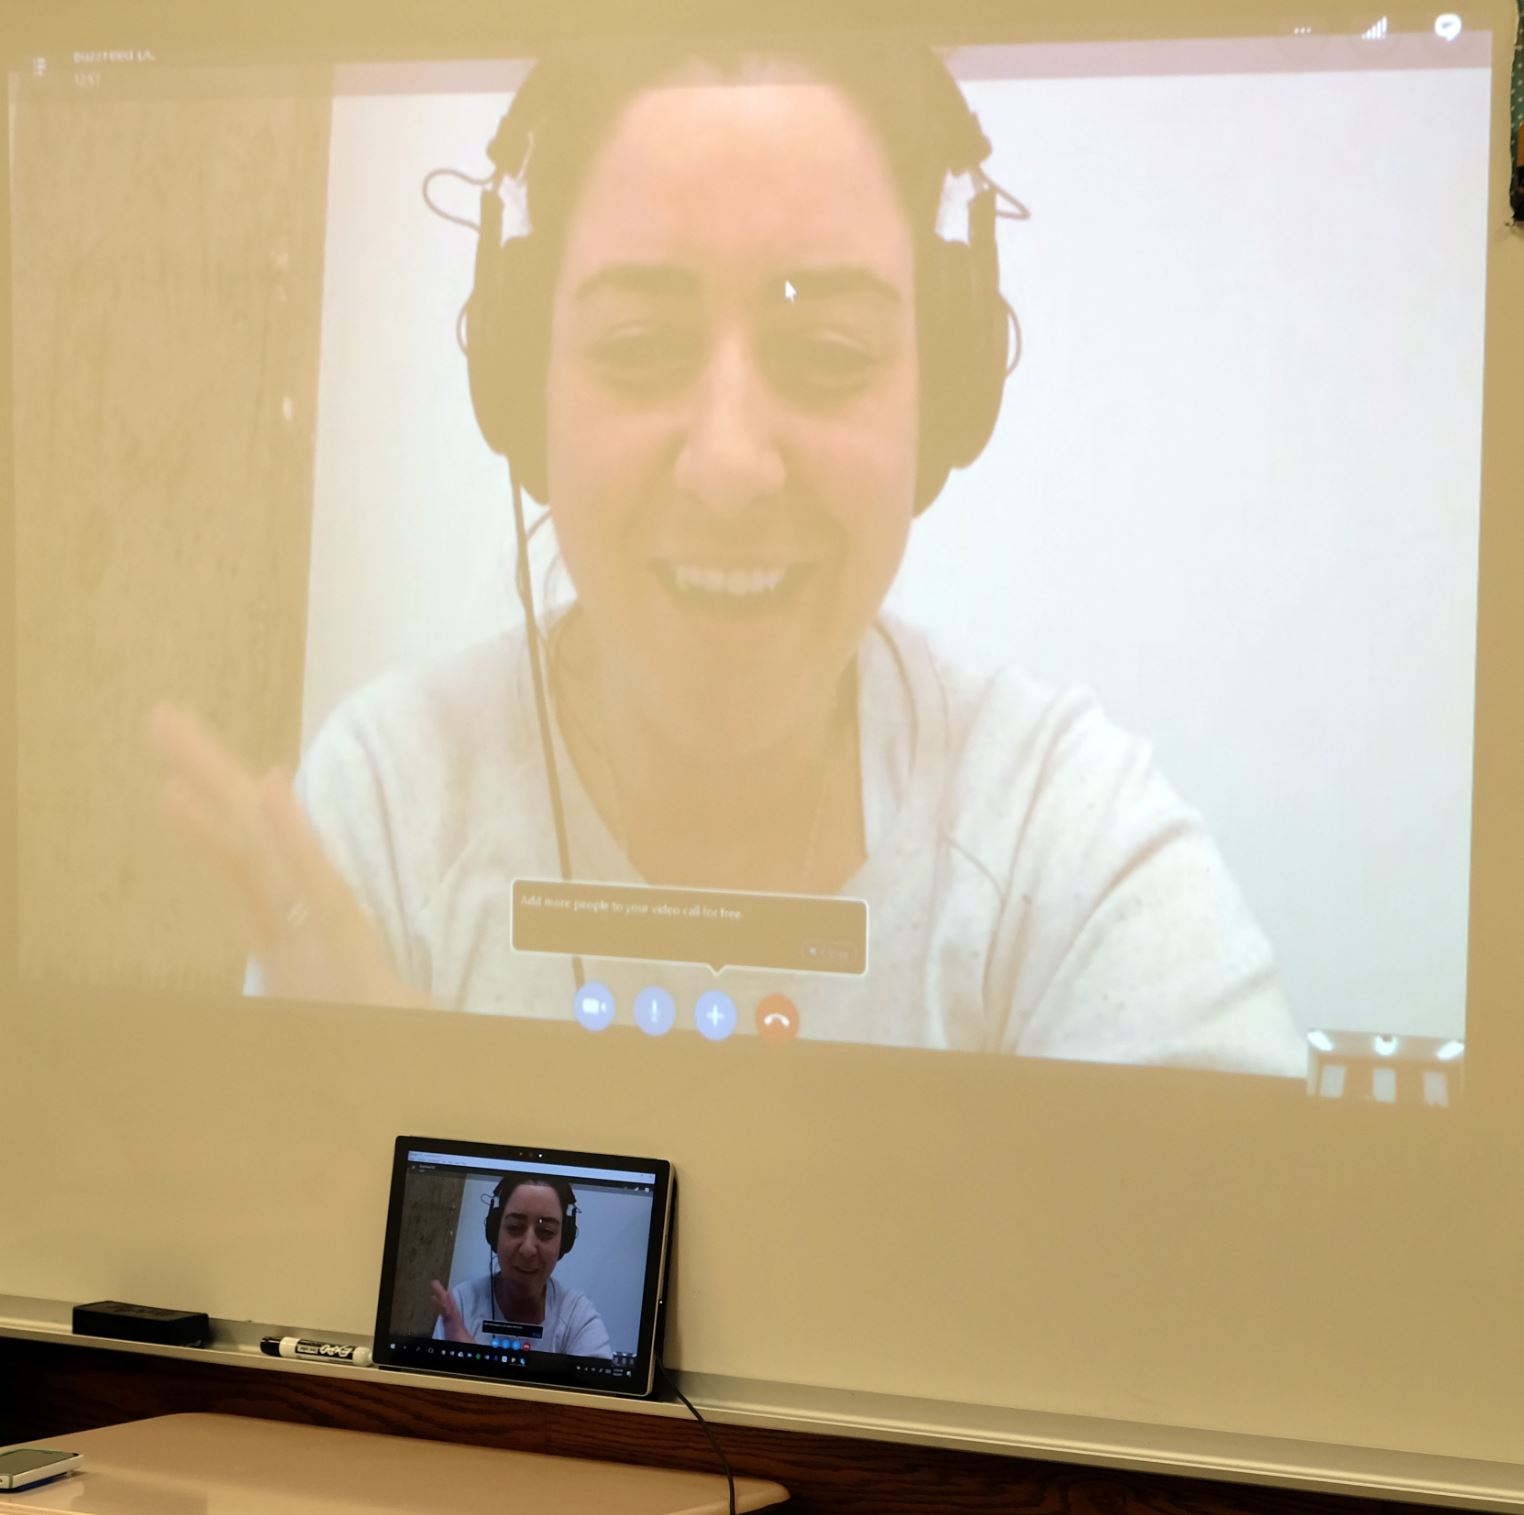 Kate Nocera '01 skyped into the Journalism class.